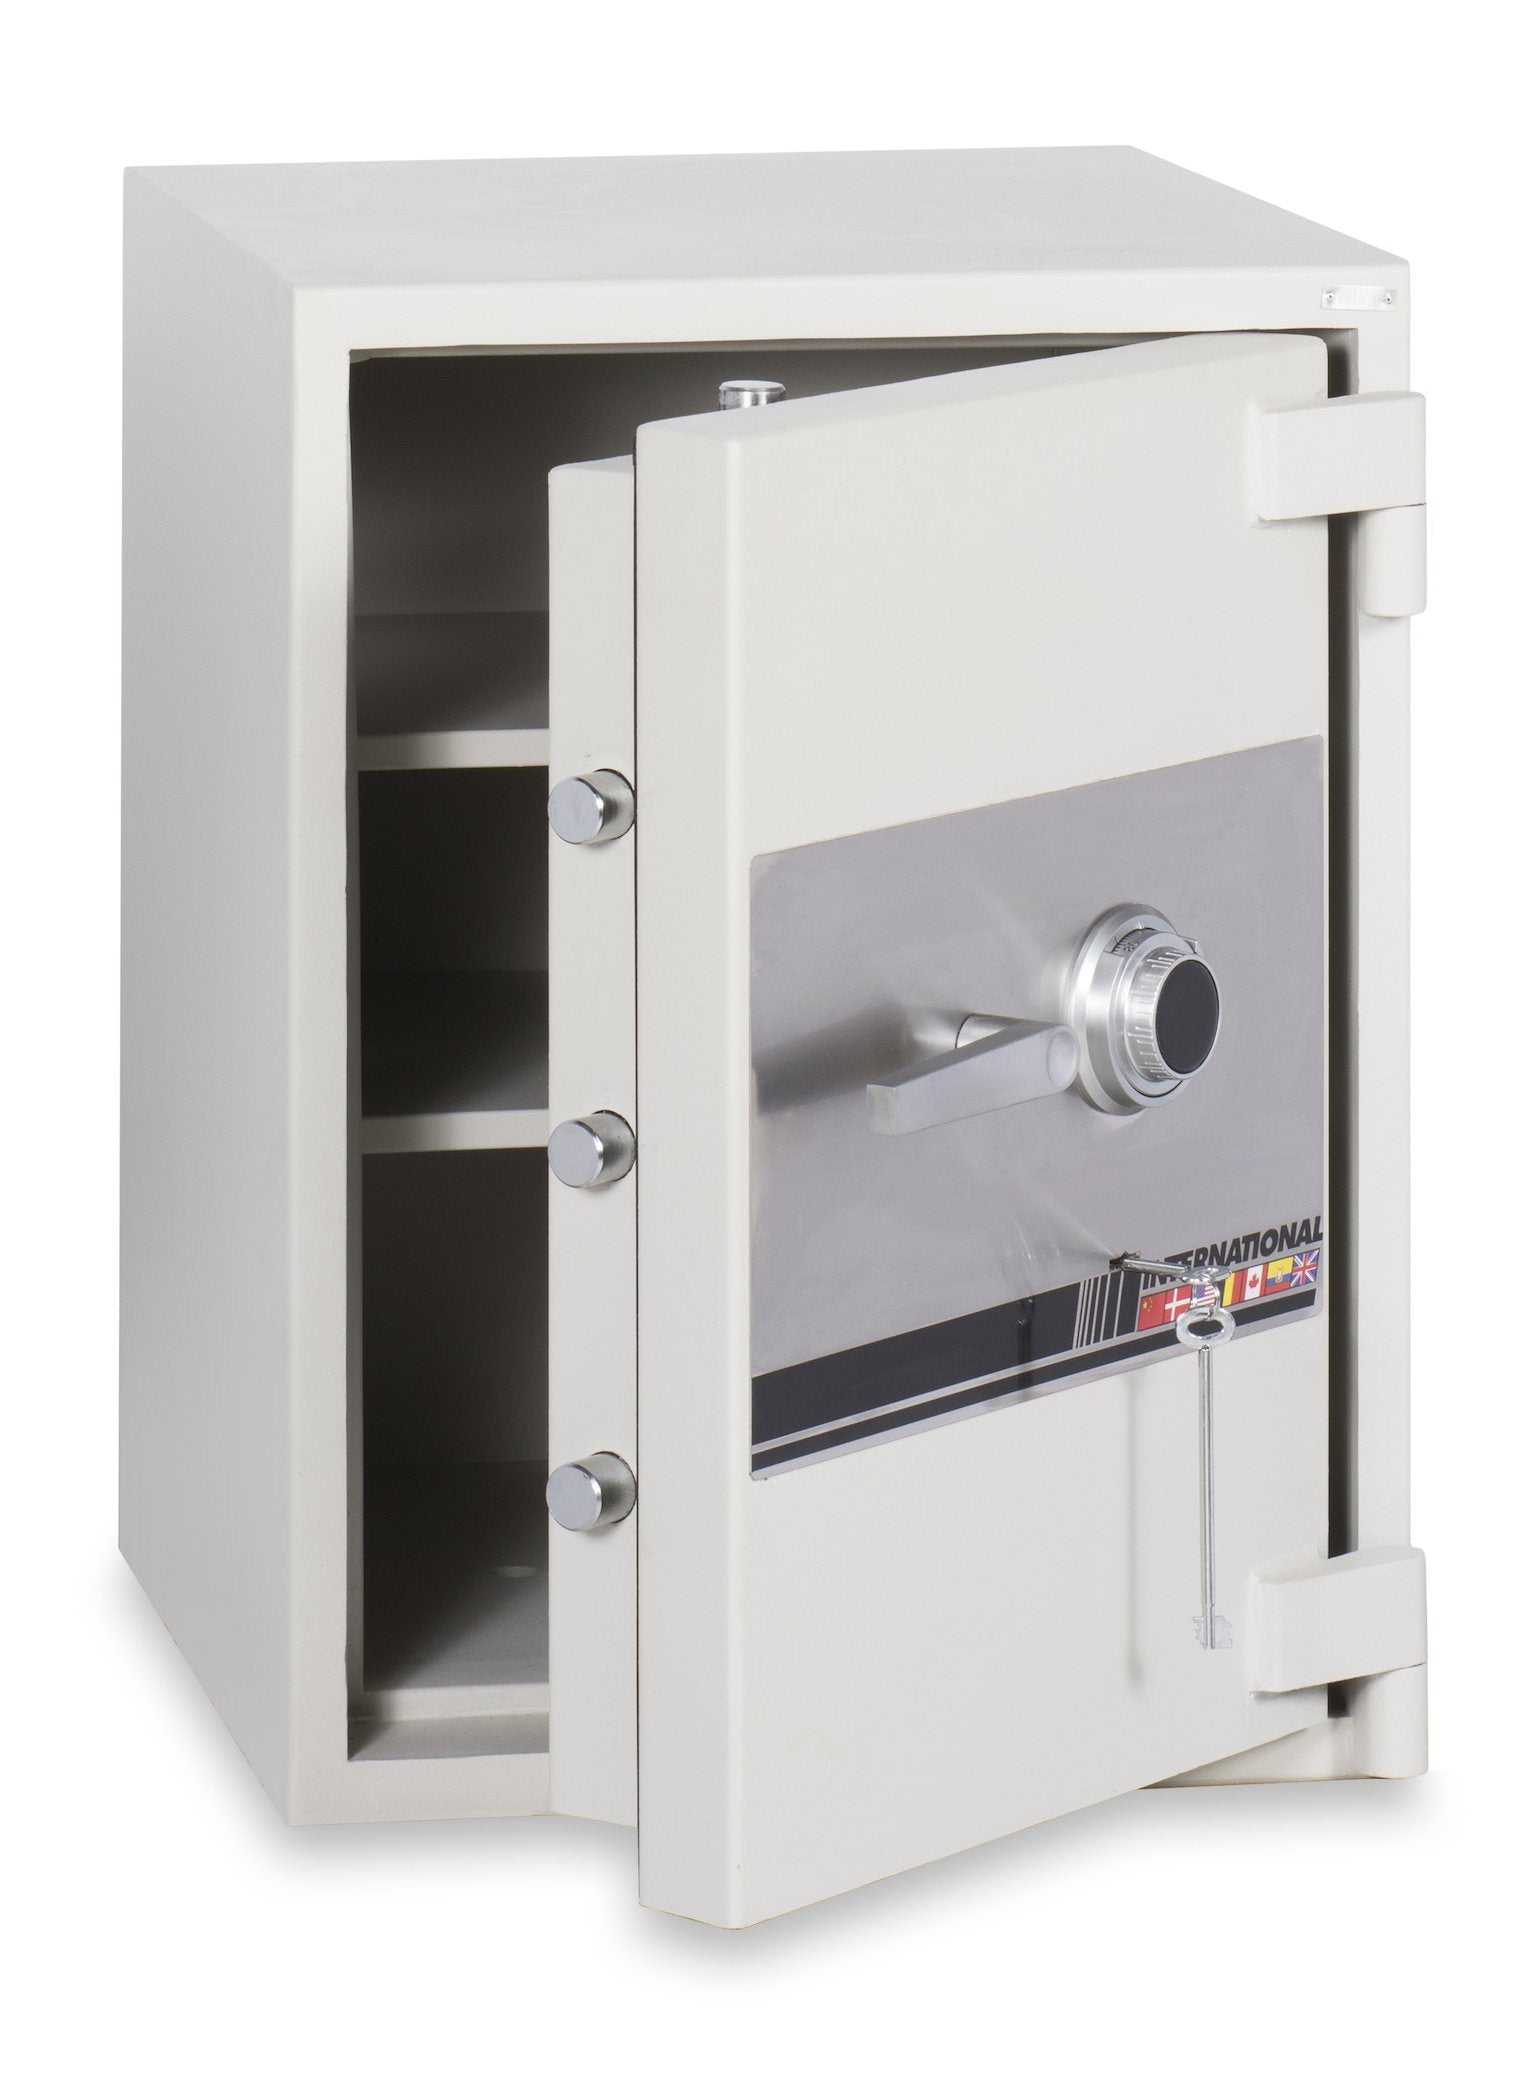 High Security Burglar Fire Safes - SafeandVaultStore FT15-2417 TL-15 High Security Burglar Fire Safe